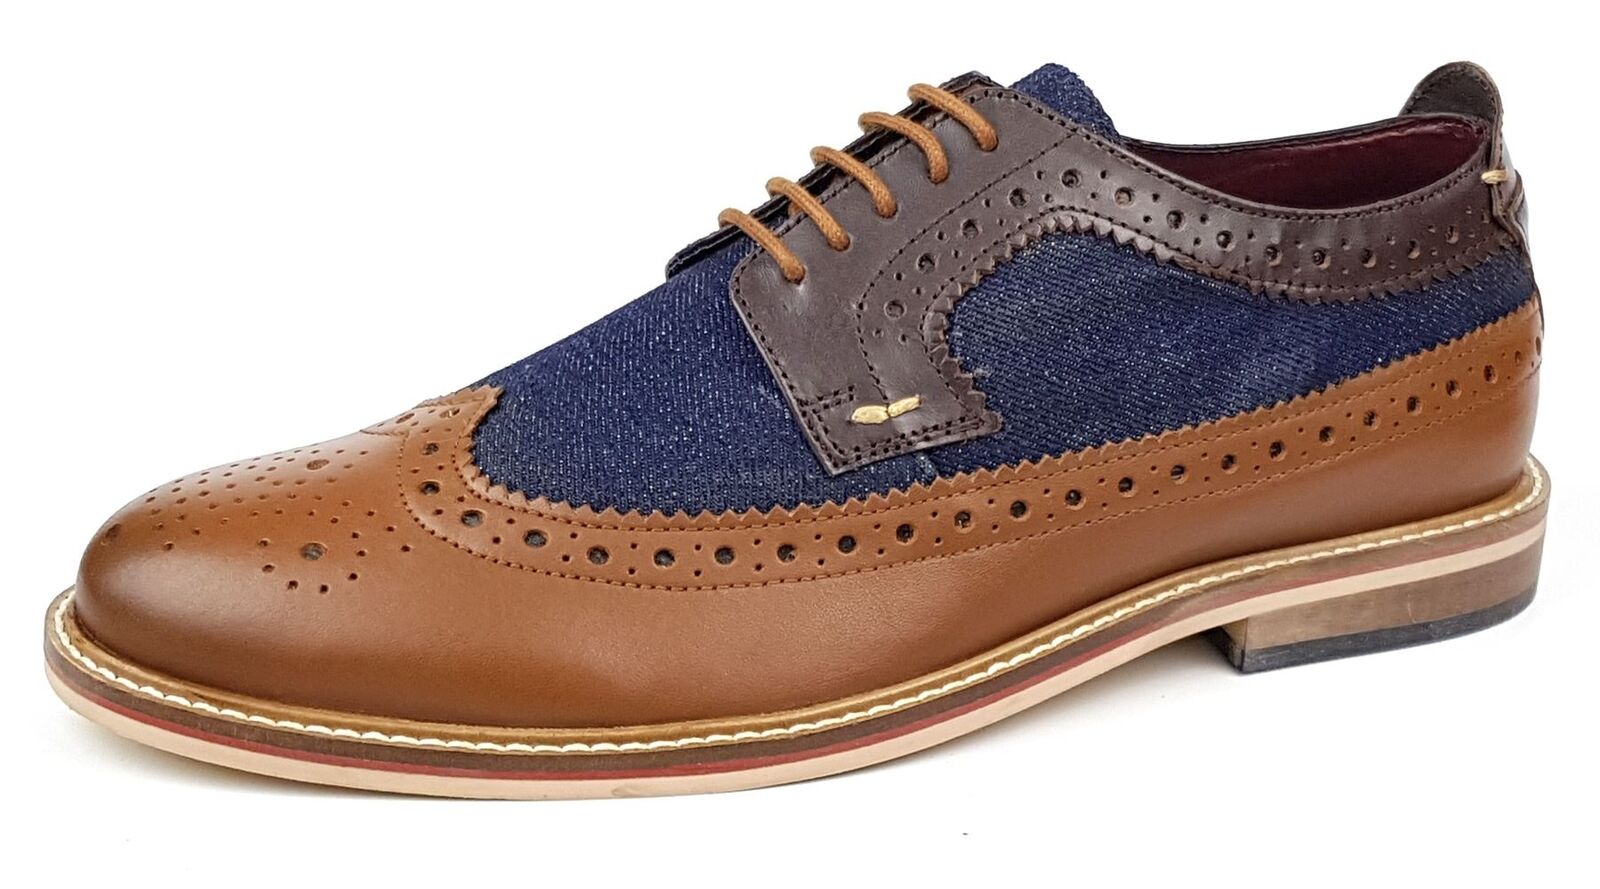 Frank James Lambeth Two Tone Lace Up Brogue Mens shoes Tan   Brown   Navy